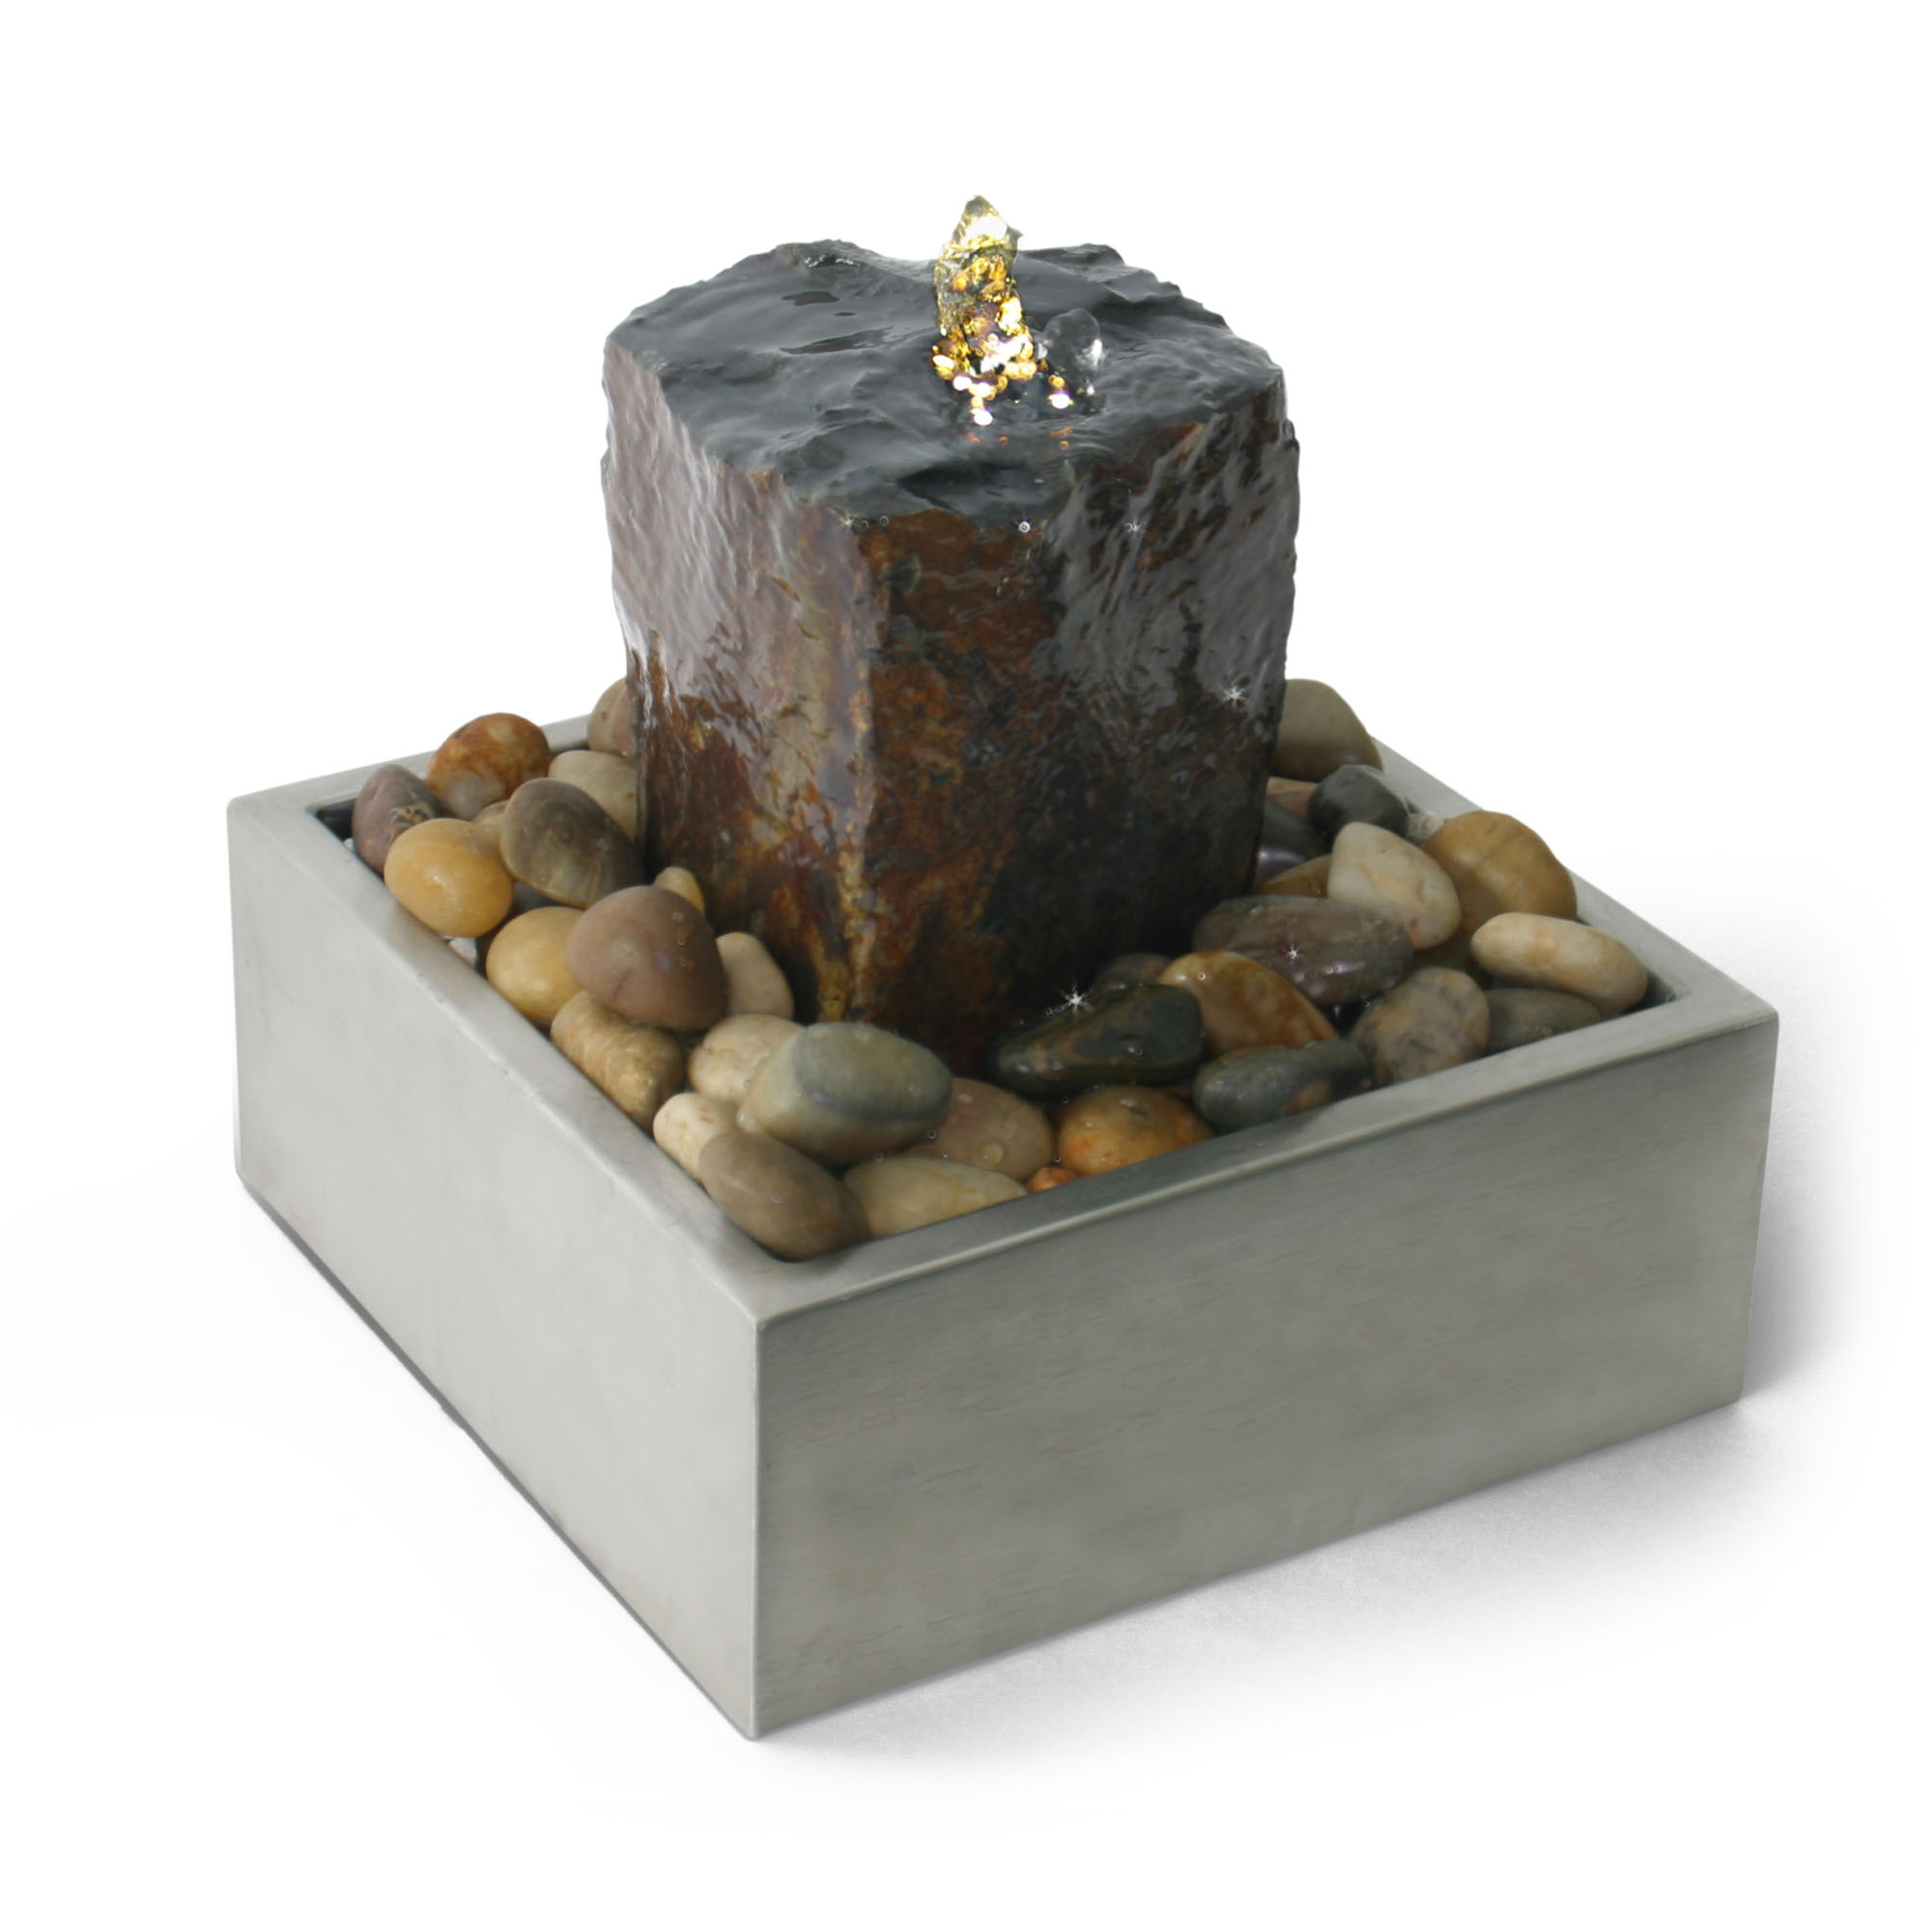 Algreen Products Table Top Fountain - Stainless Square Basalt